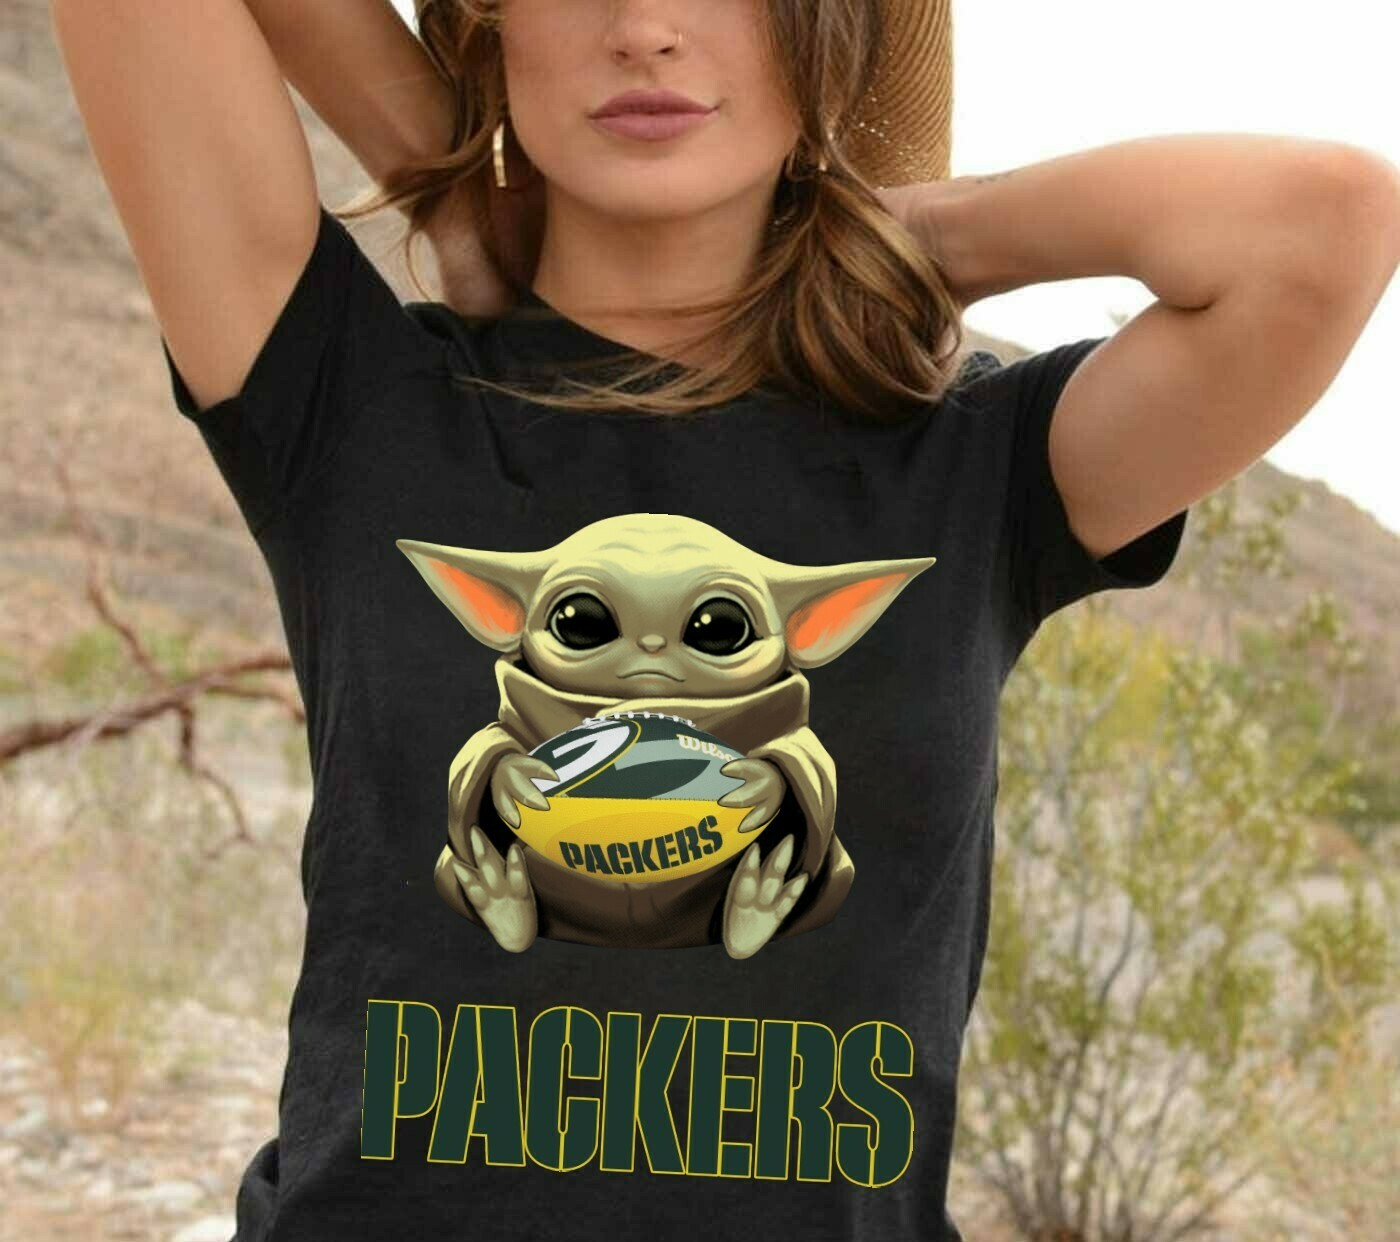 Green Bay Packers Baby Yoda Star Wars The Mandalorian The Child First Memories Floating NFL Football Team Dad Mon Kid Fan T-Shirt Long Sleeve Sweatshirt Hoodie Jolly Family Gifts